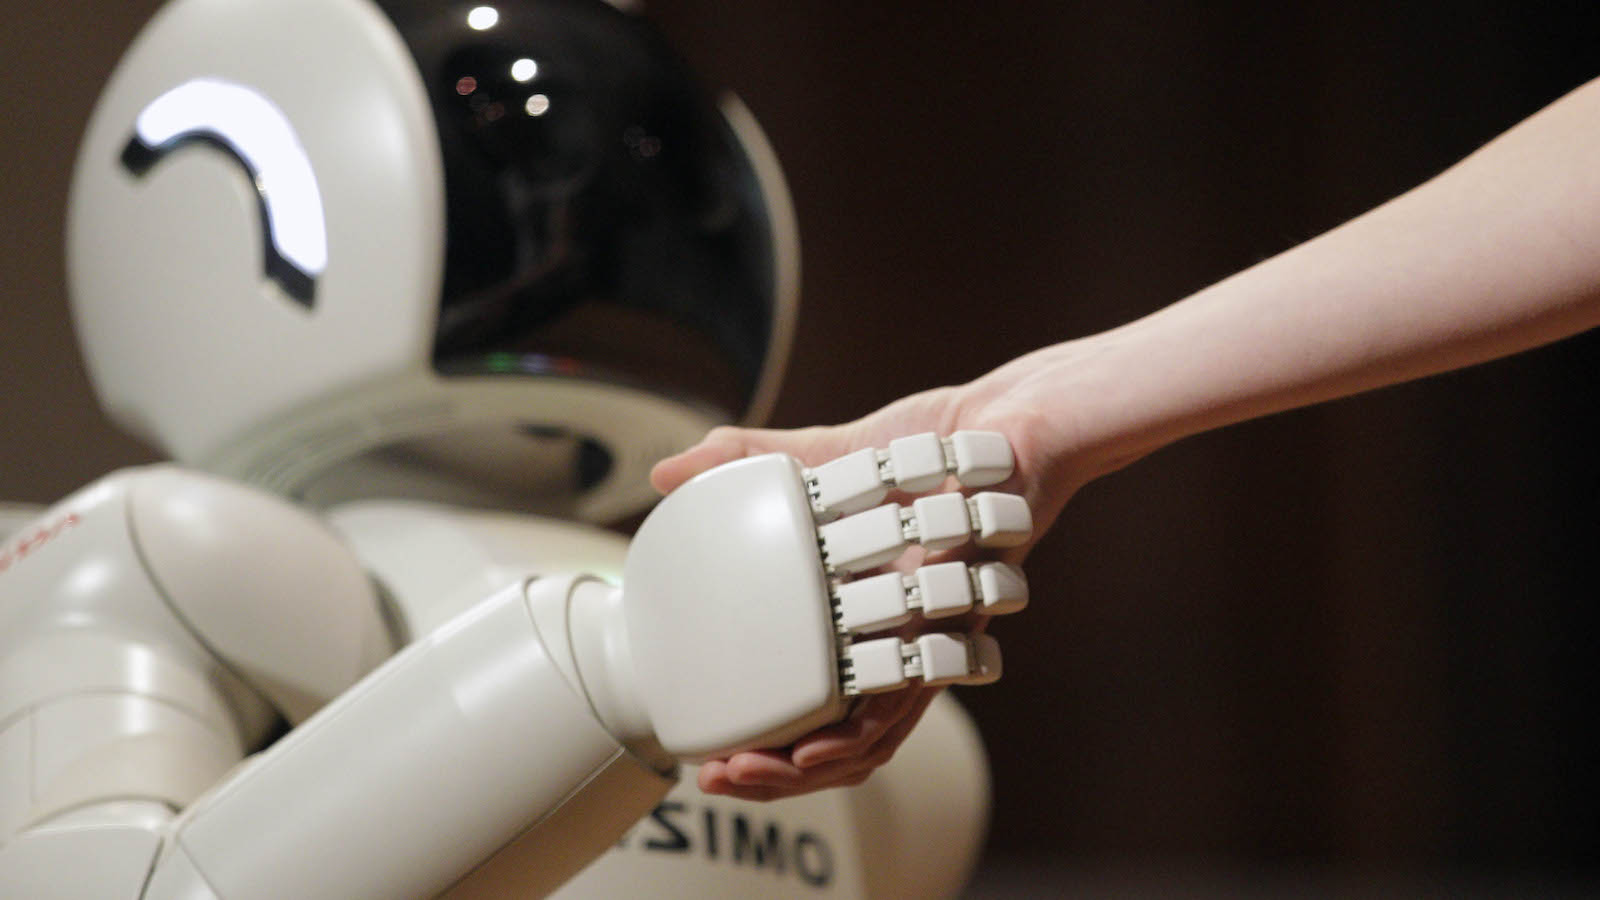 Honda Motors' humanoid robot ASIMO (Advanced Step in Innovative Mobility) shakes hands with assistant as it demonstrates its skills, in Belgrade, Serbia, Monday, Sept. 24, 2012. (AP Photo/Darko Vojinovic)